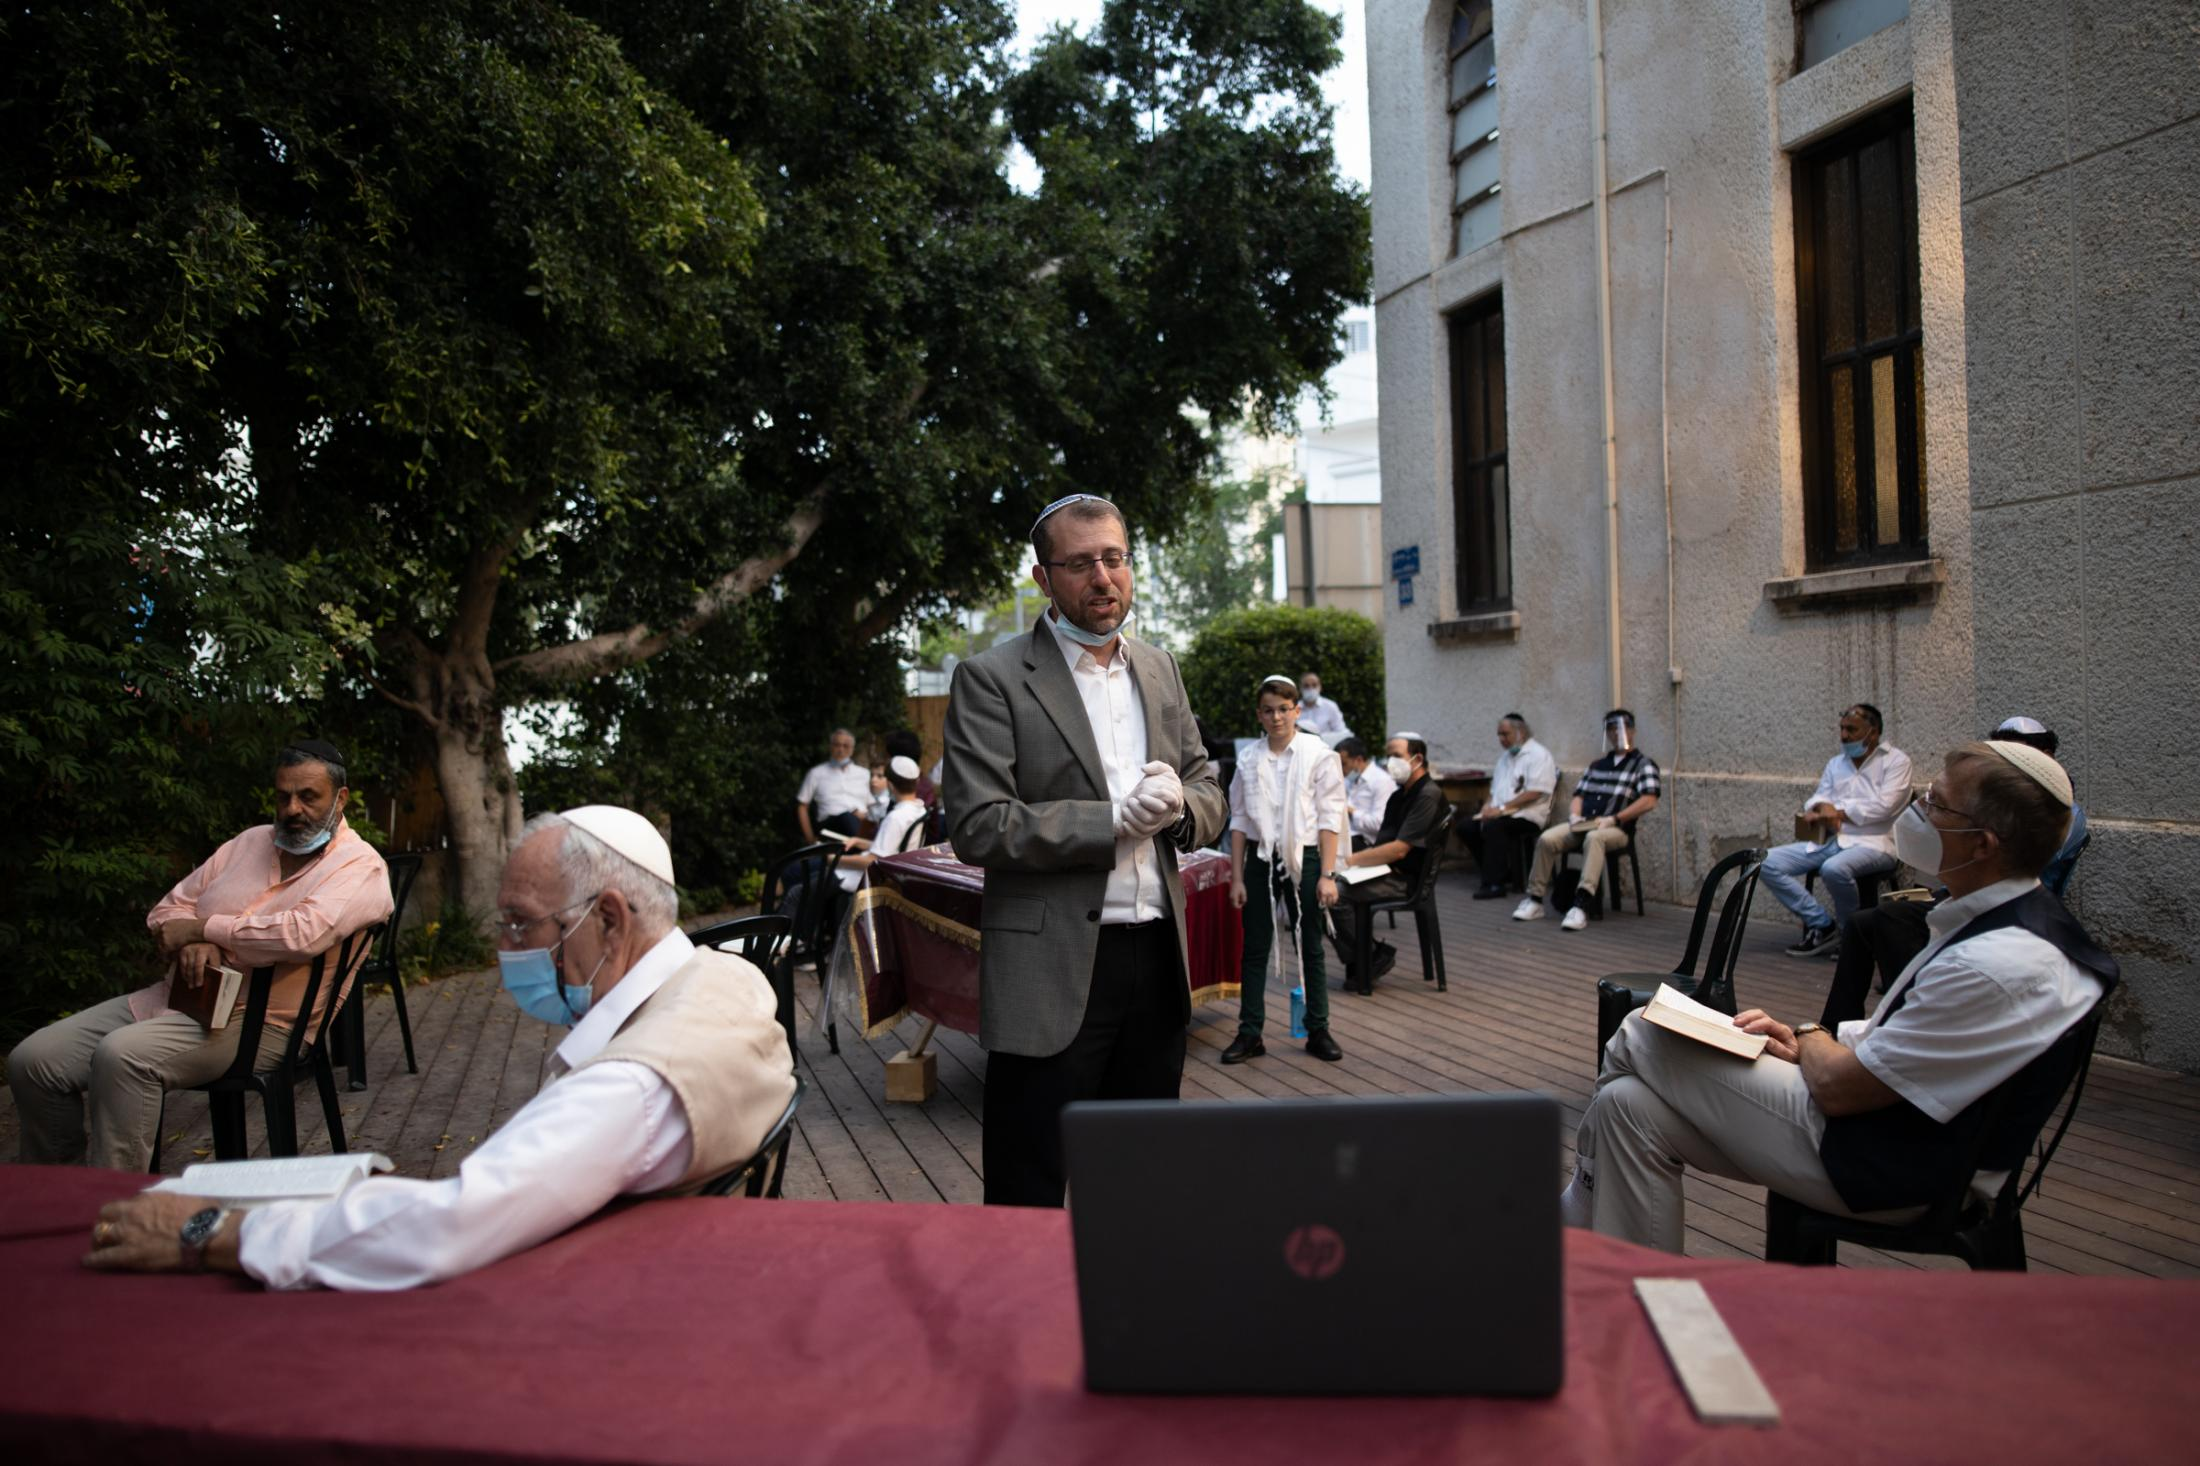 Rabbi Ariel Konstantyn (center) speaks to participants watching a Facebook live broadcast of his Kabbalat Shabbat service in the yard of the Tel Aviv International Synagogue, Israel, May 15, 2020.